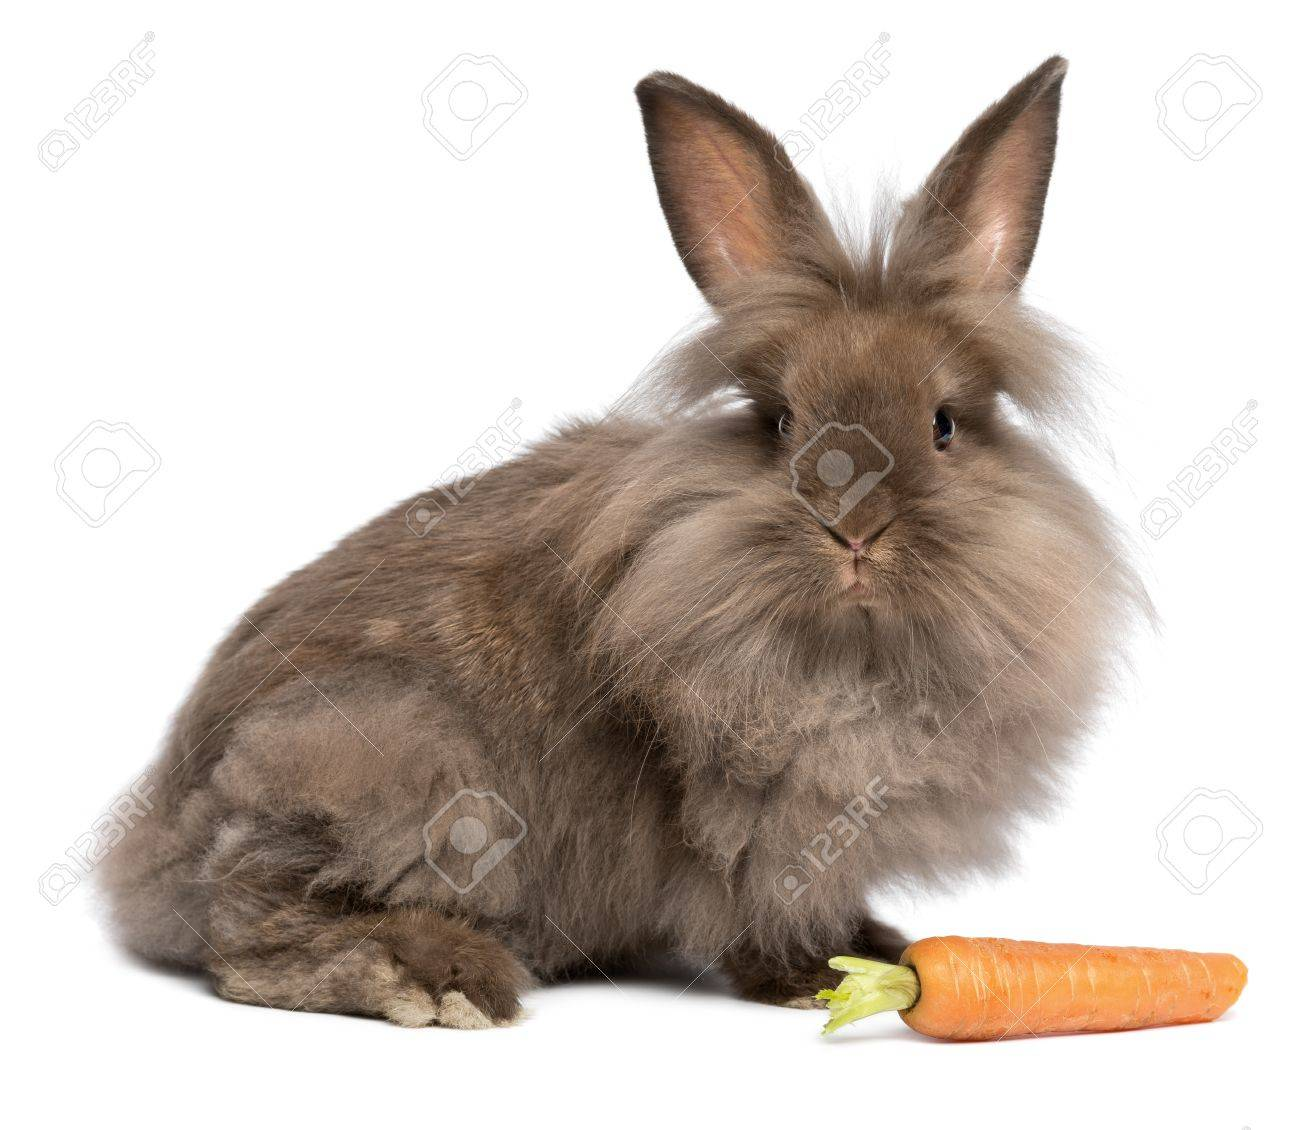 Bunny Carrot Bunny Rabbit With a Carrot